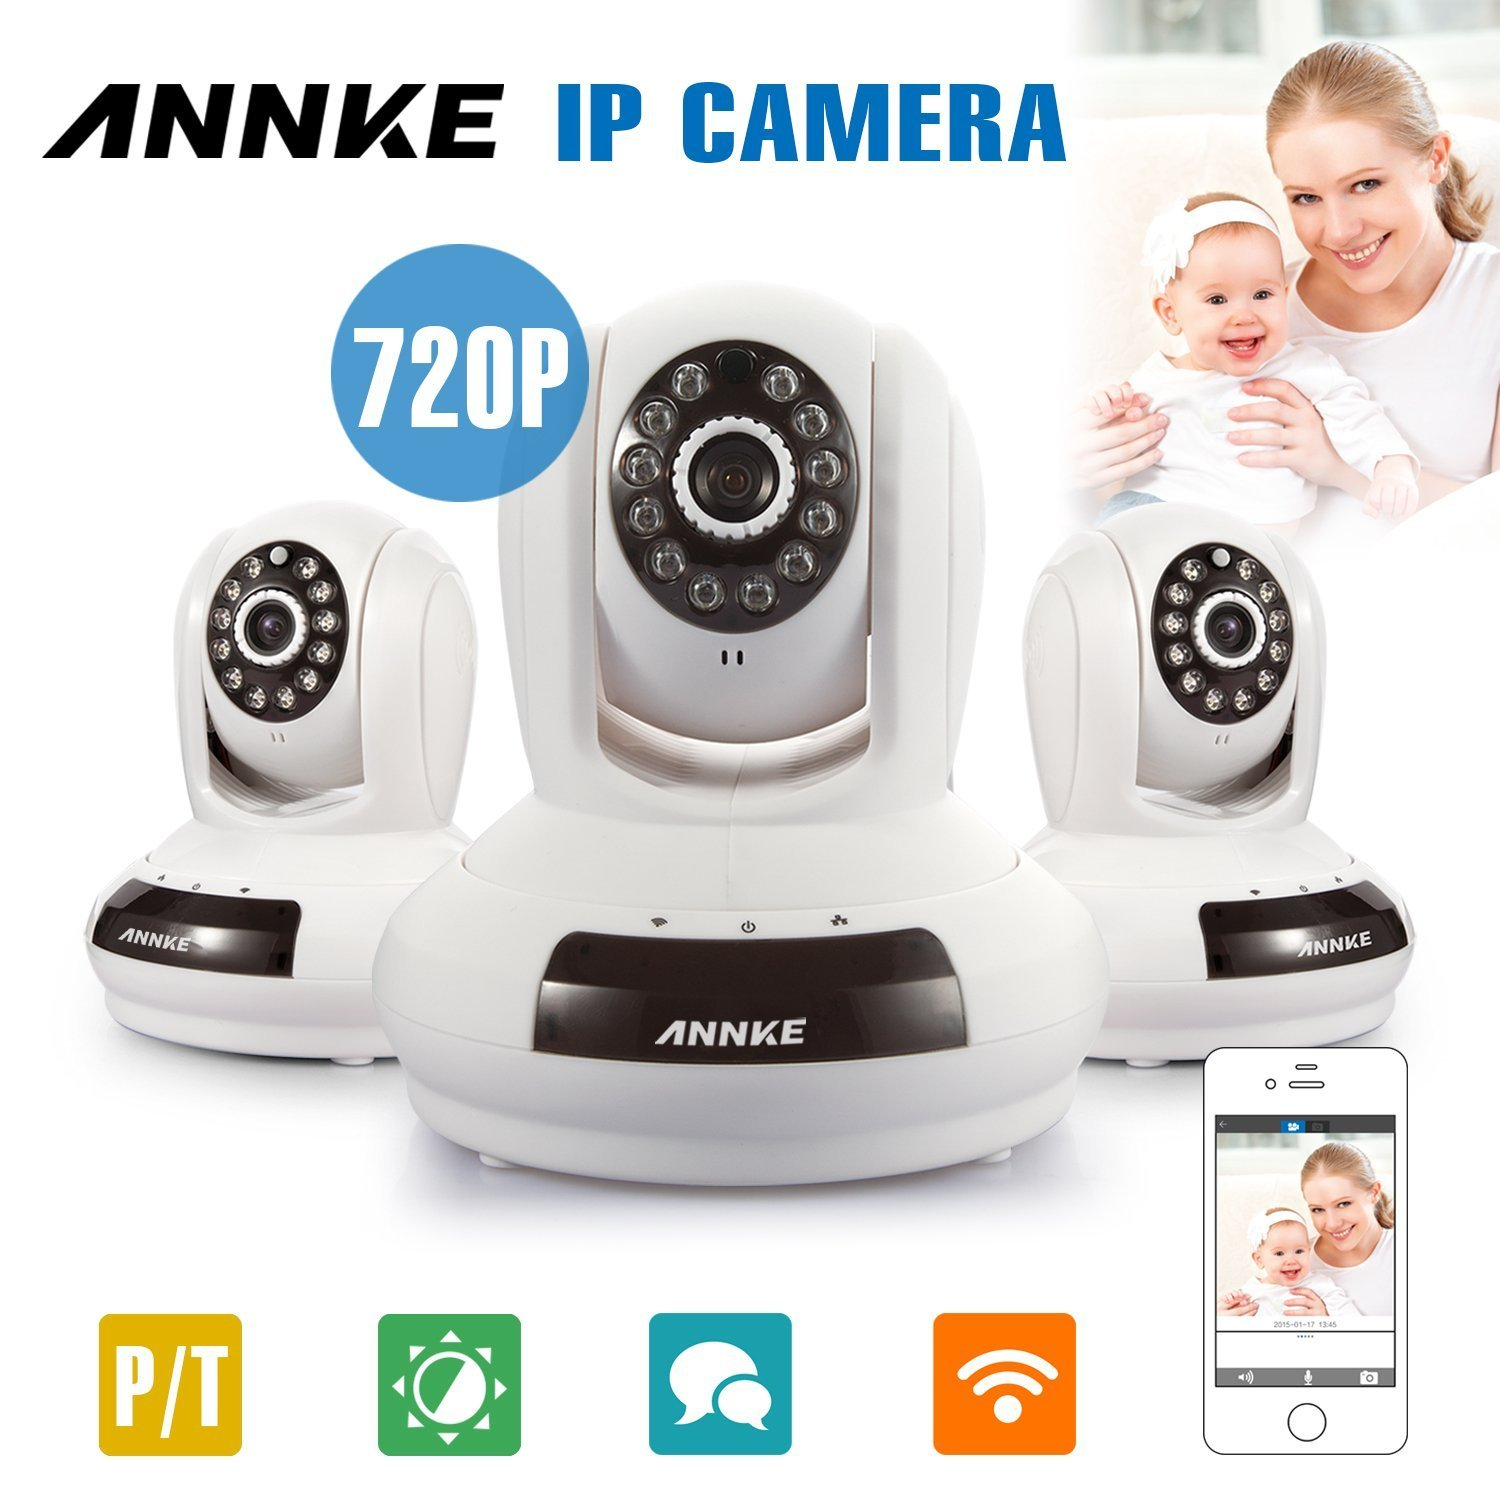 Annke WiFi Security Systems